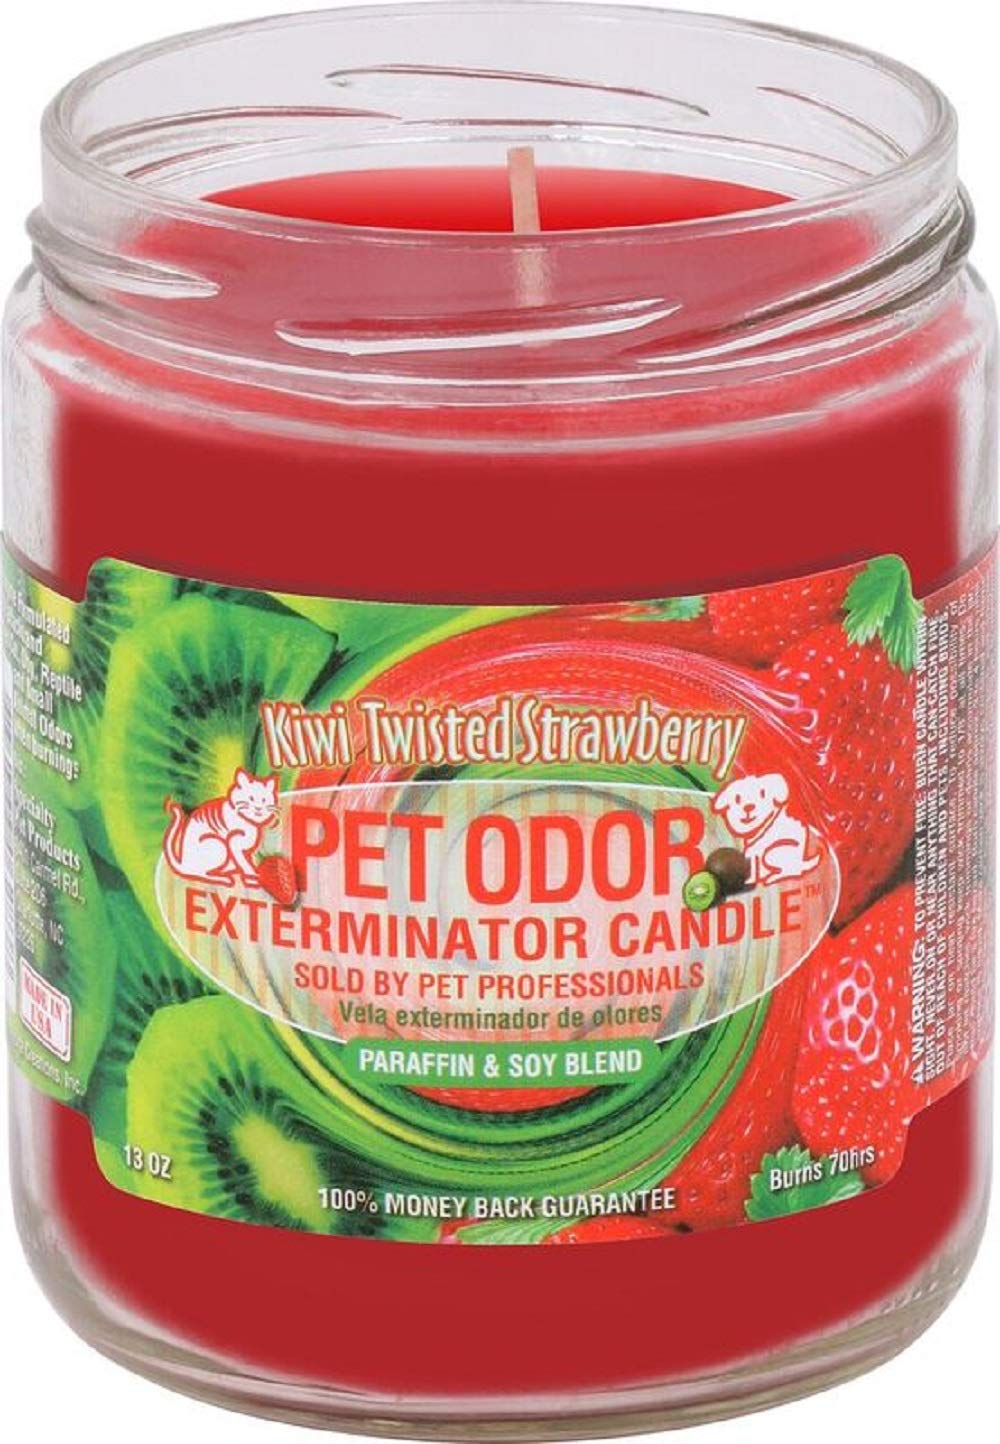 Specialty Pet Products Kiwi Twisted Strawberry Pet Odor Exterminator 13 Ounce Jar Candle